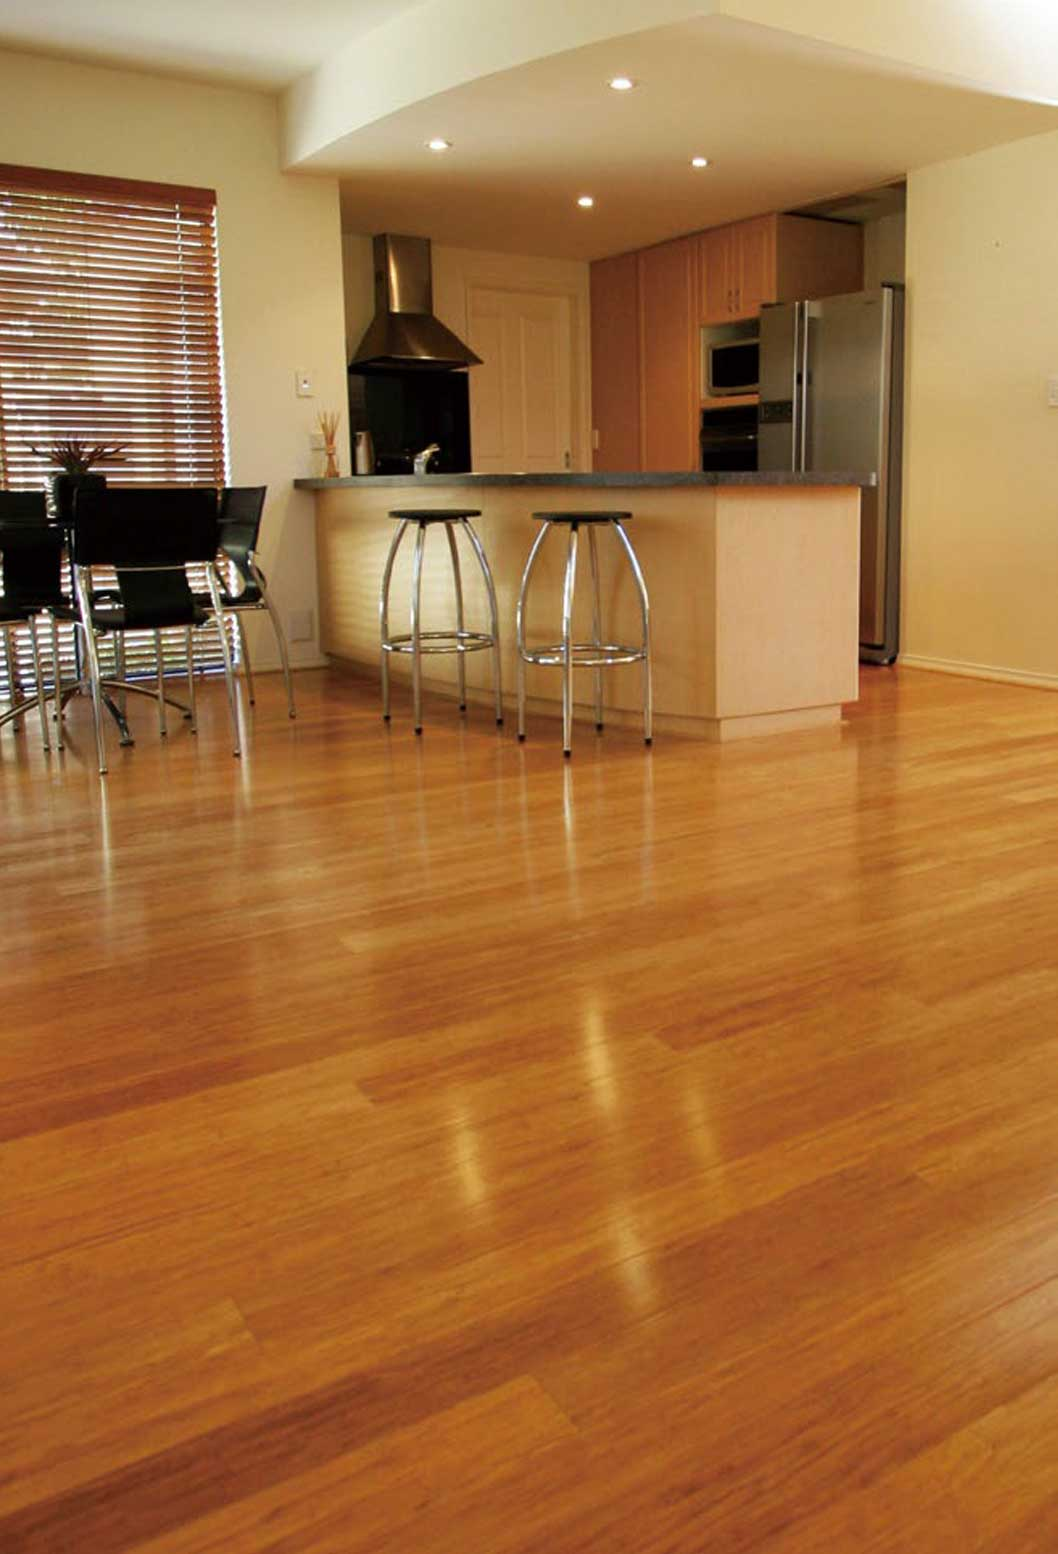 Bamboo flooring in a kitchen